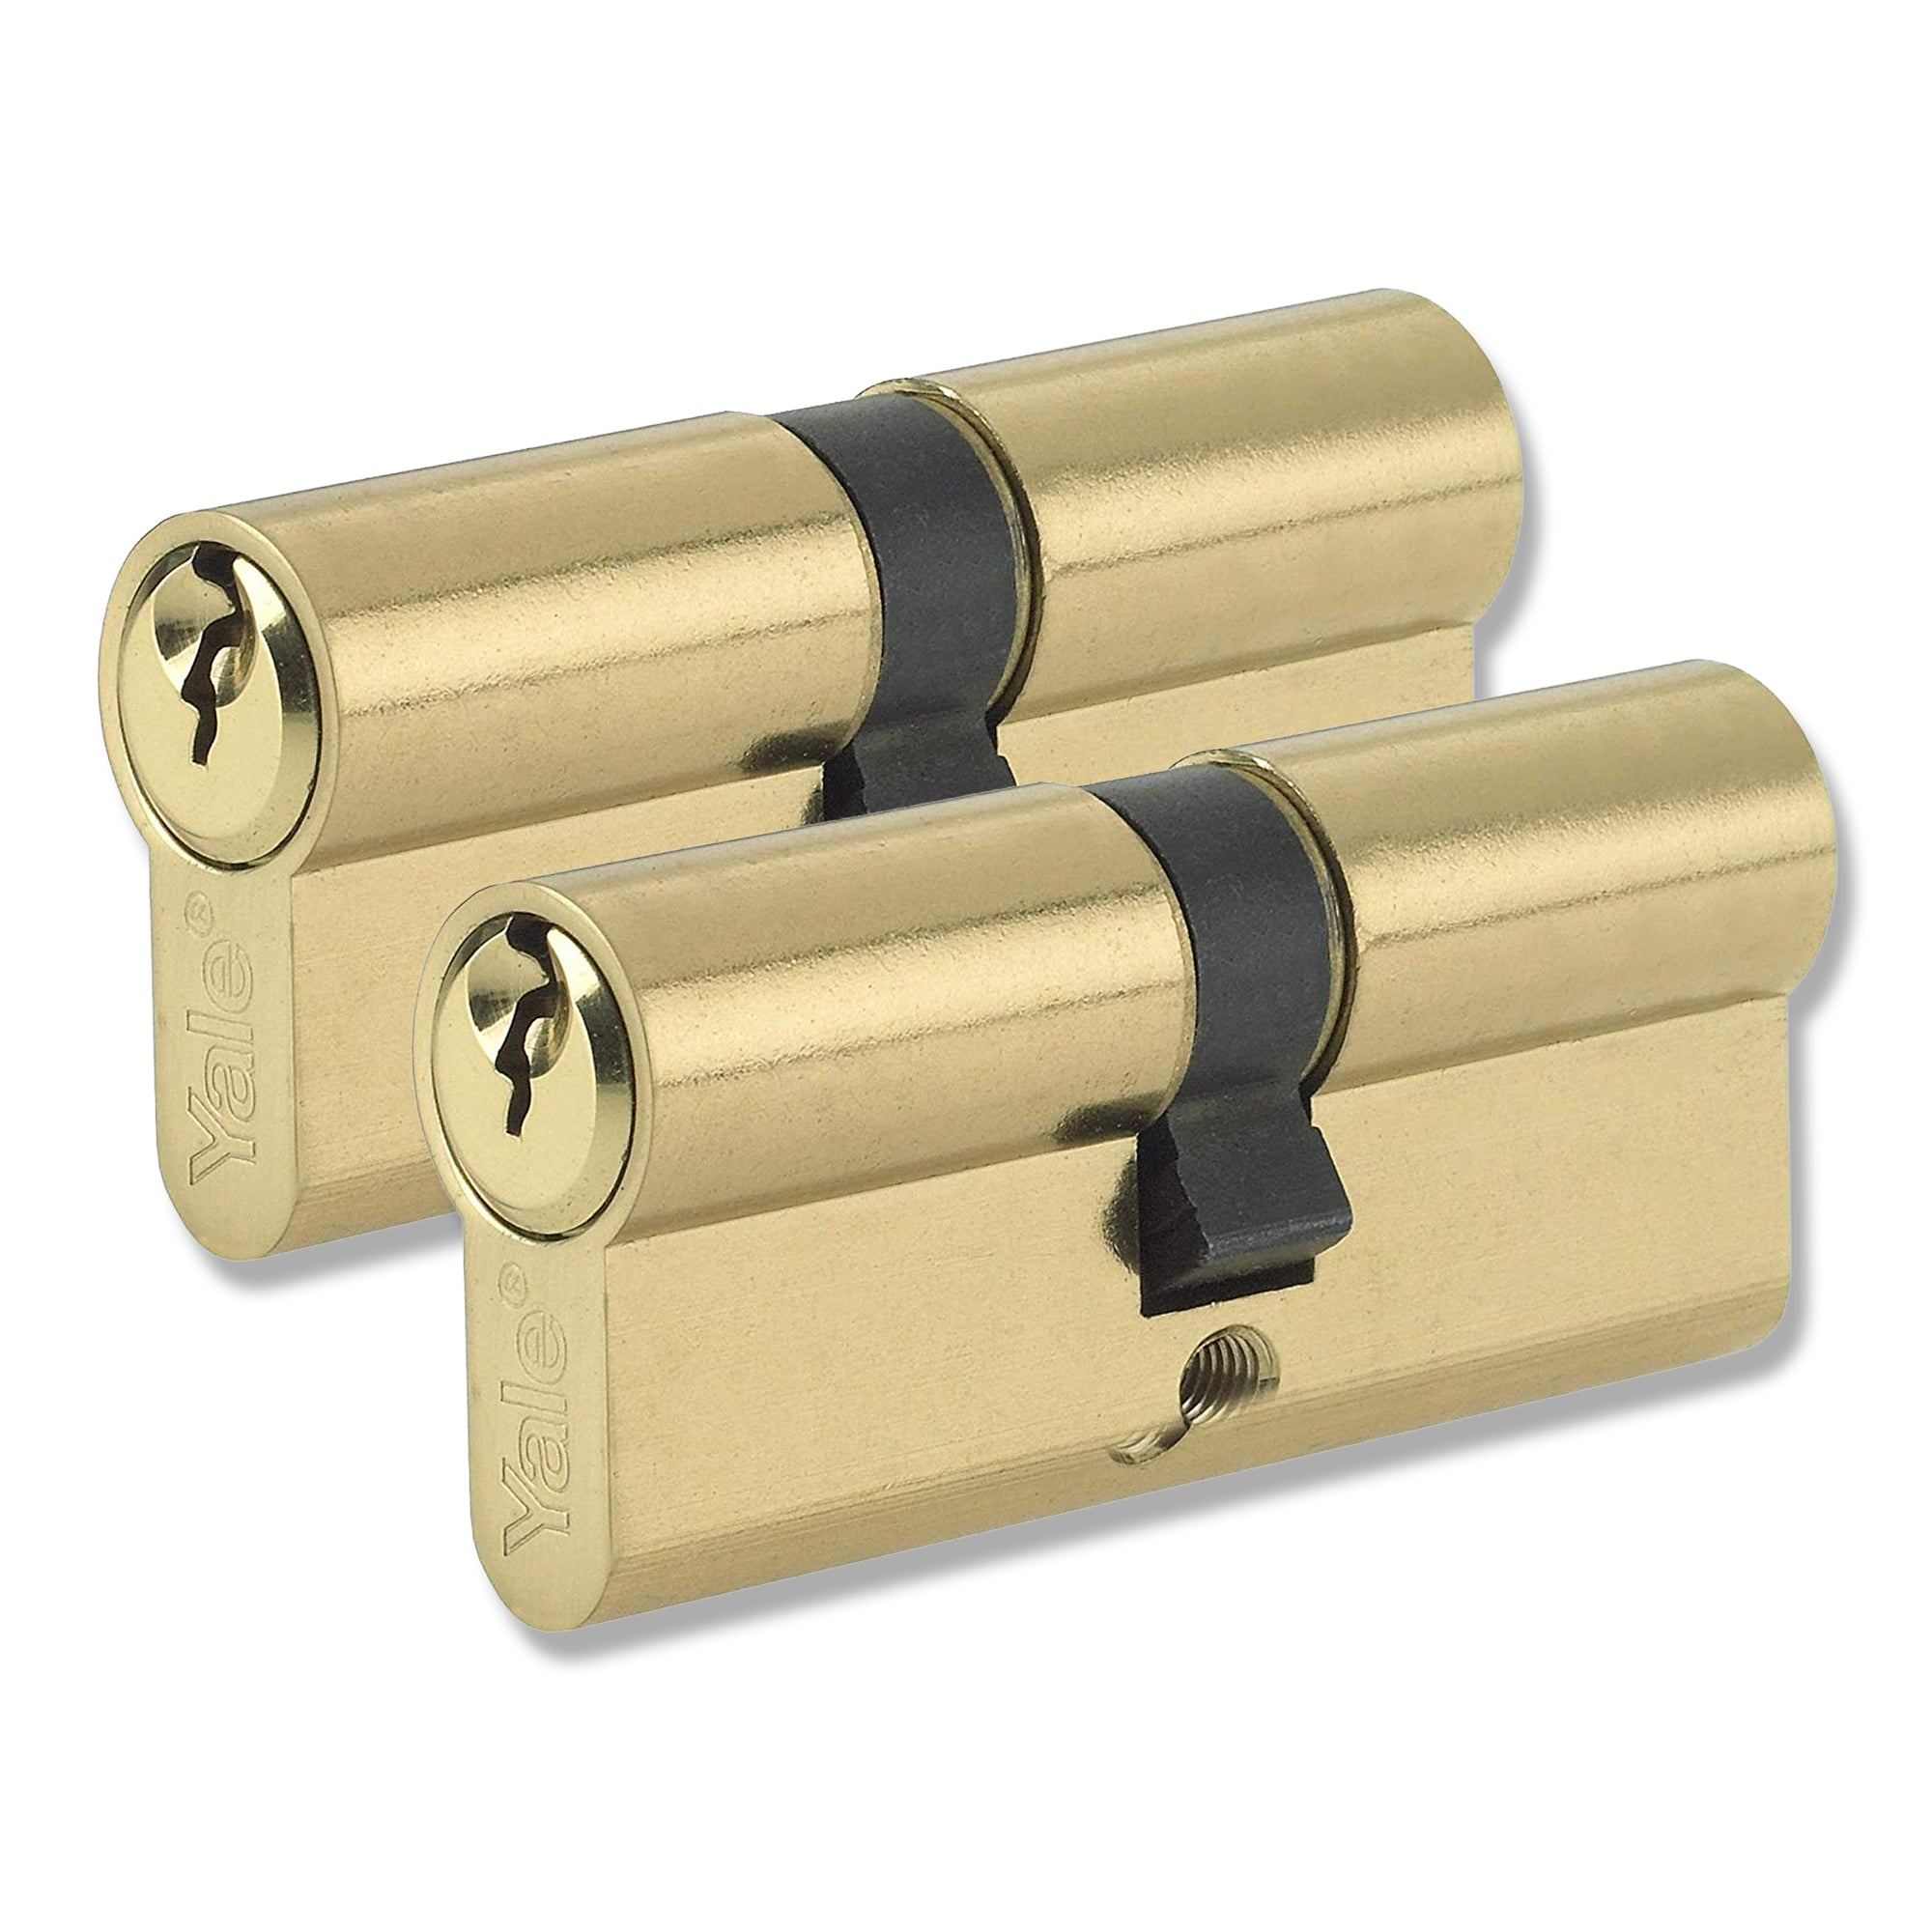 Yale  40 / 50 Euro Cylinder Lock uPVC Timber Door Barrel Keyed Alike -  - Yale - UPVCSTORE